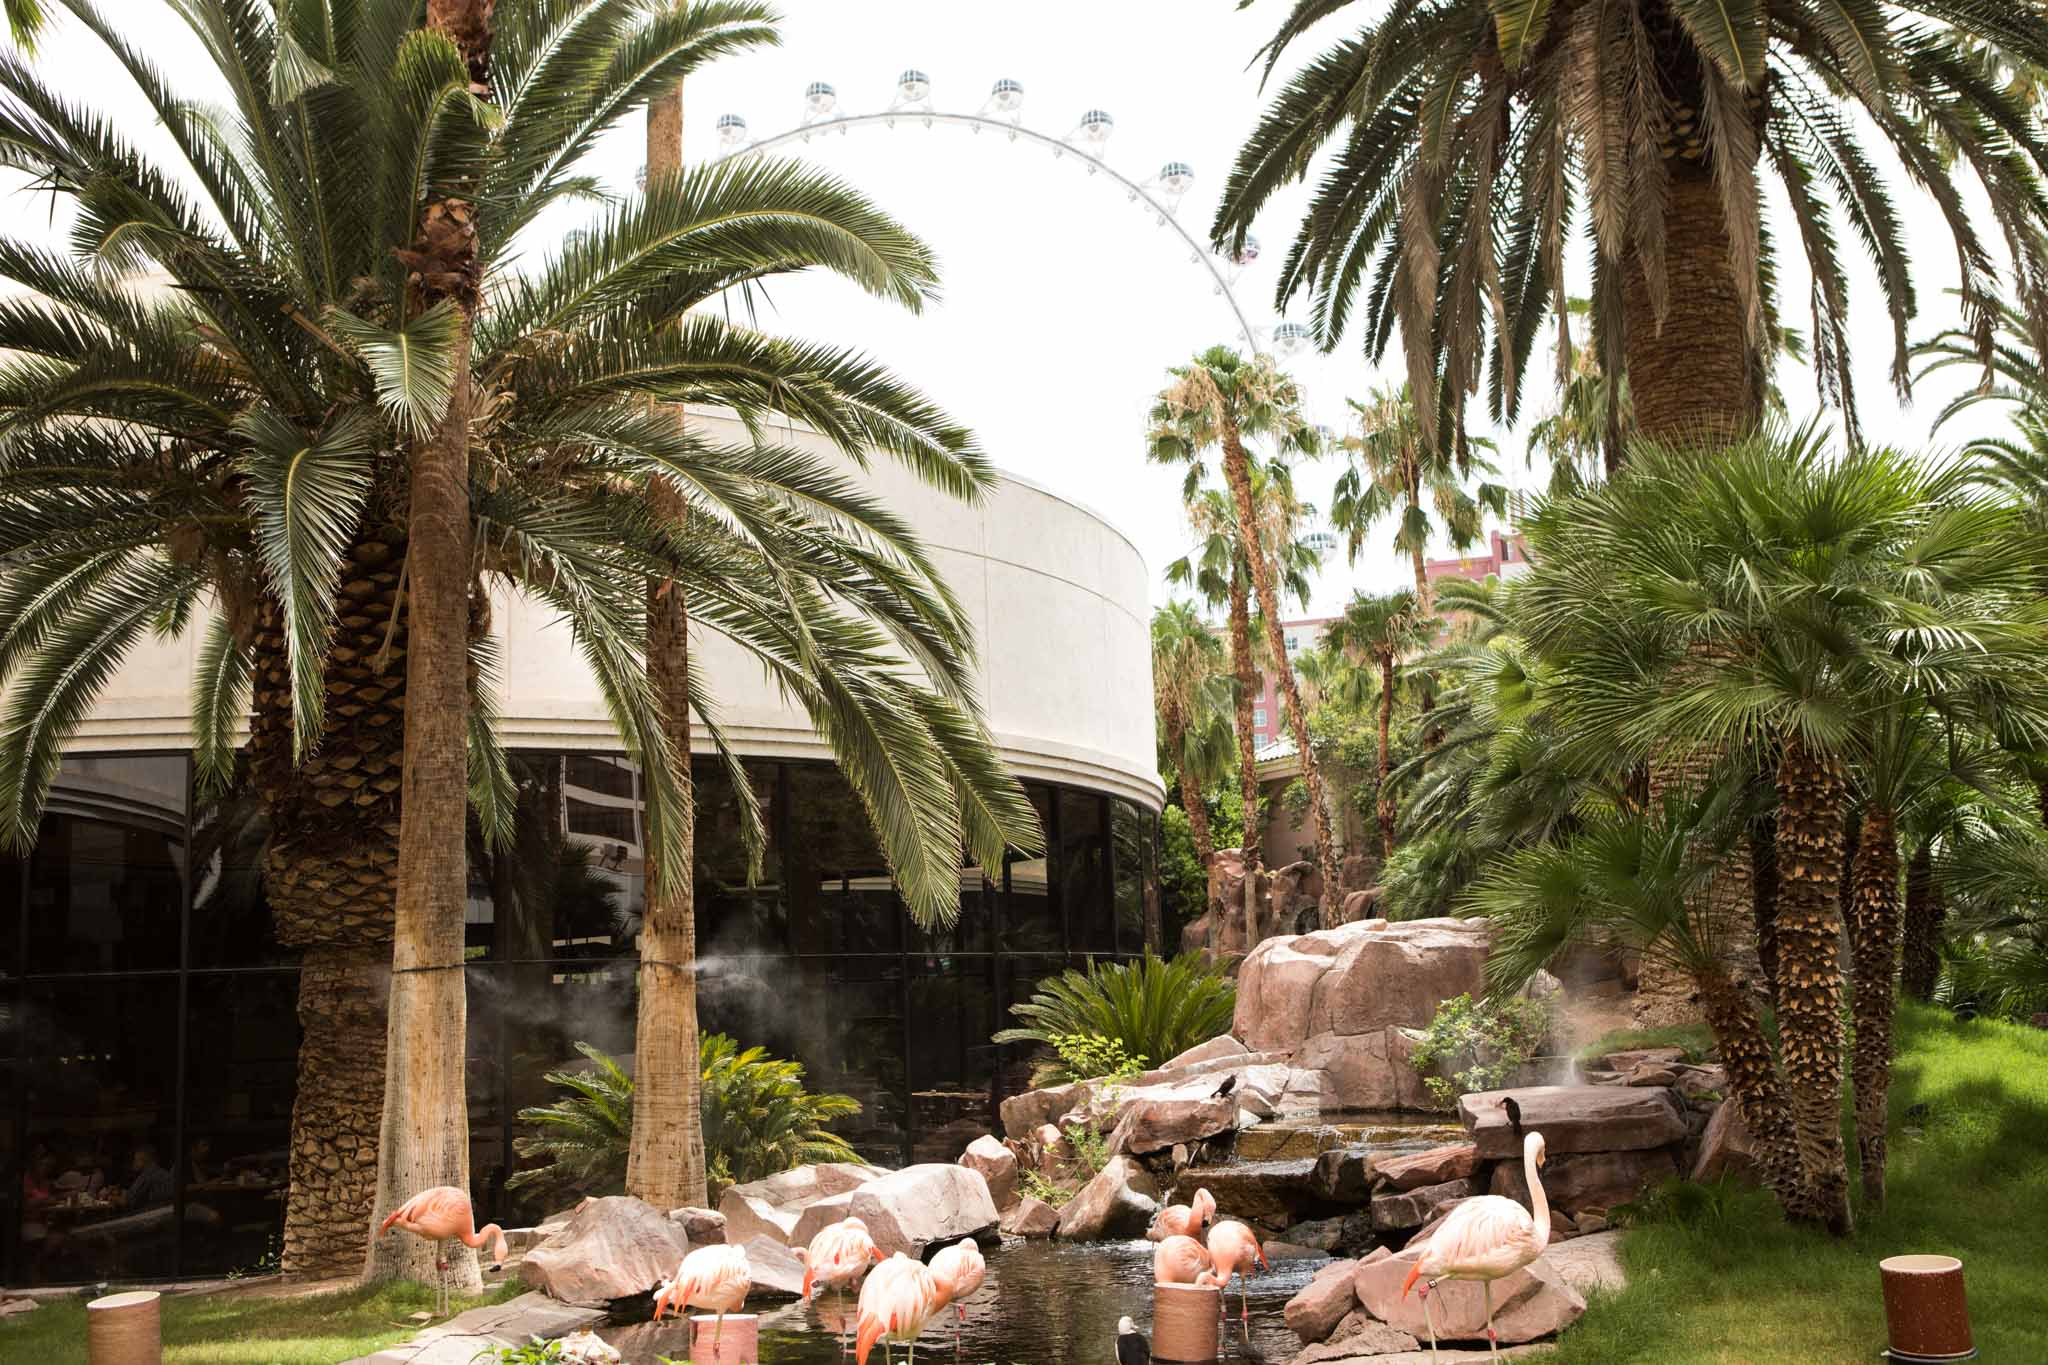 live flamingos and palm trees at the Flamingo in Las Vegas.jpg